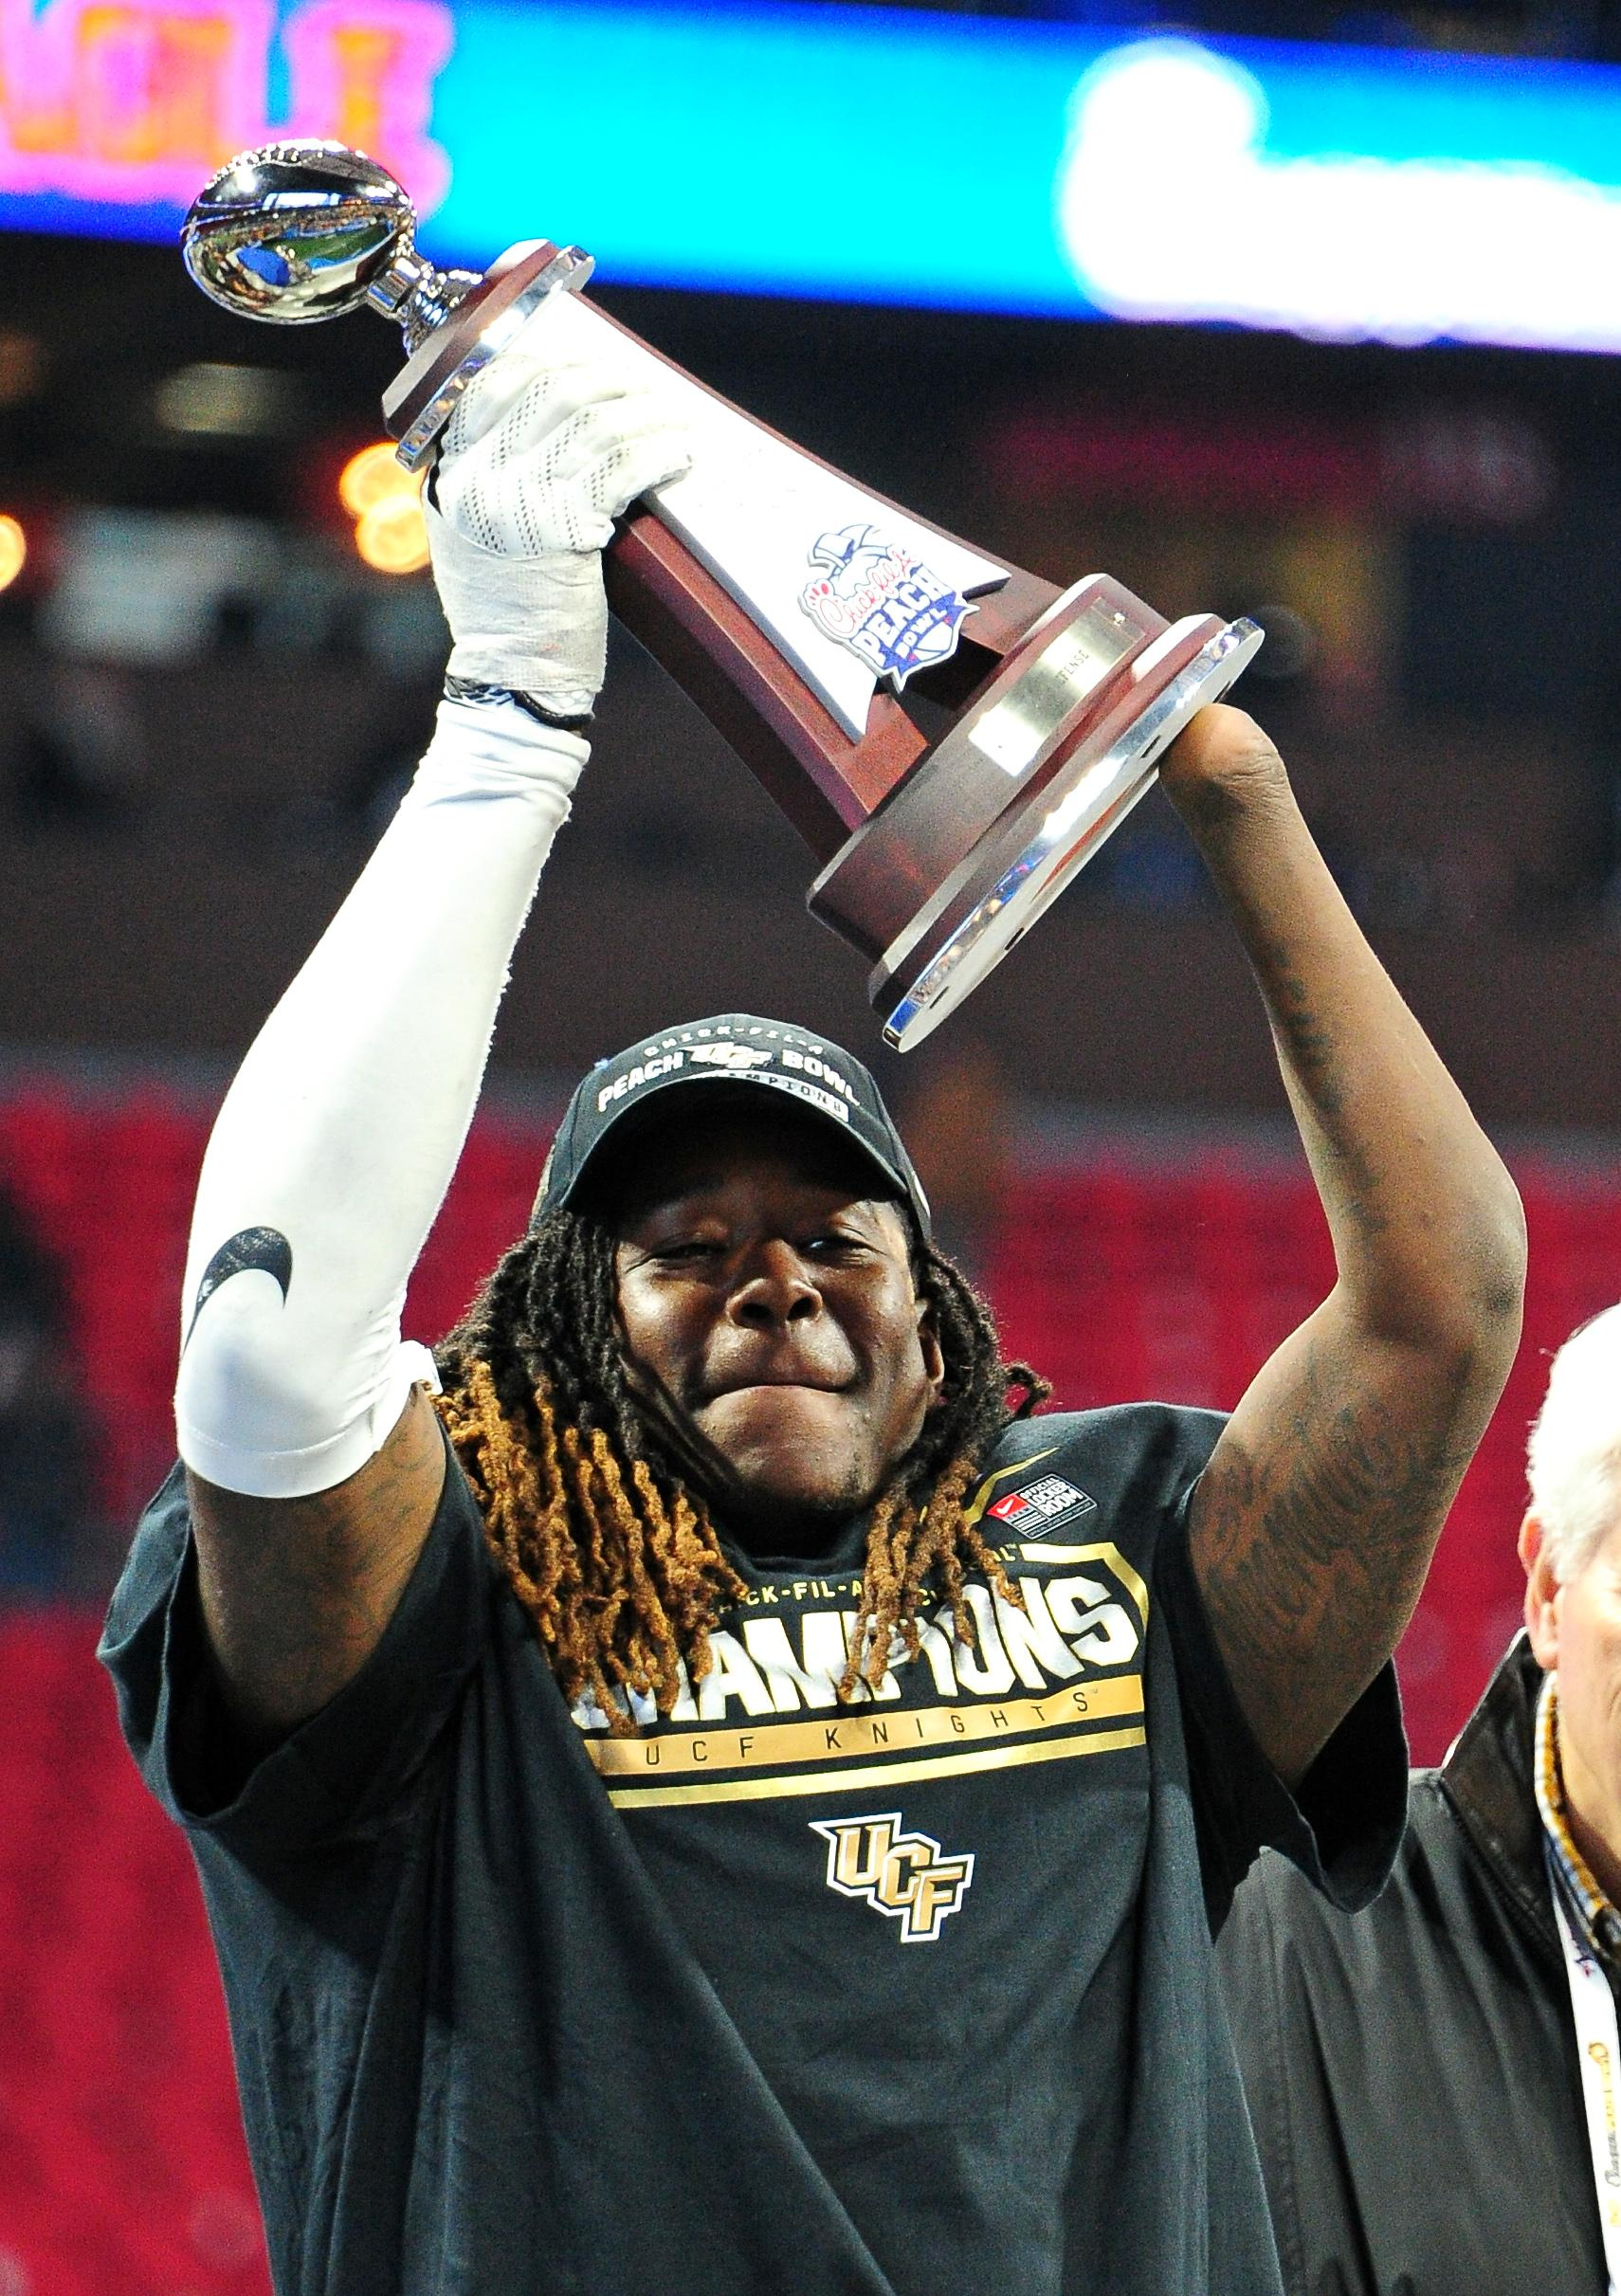 Shaquem lifts the trophy at the Peach Bowl in January during his final collegiate game with University of Central Florida